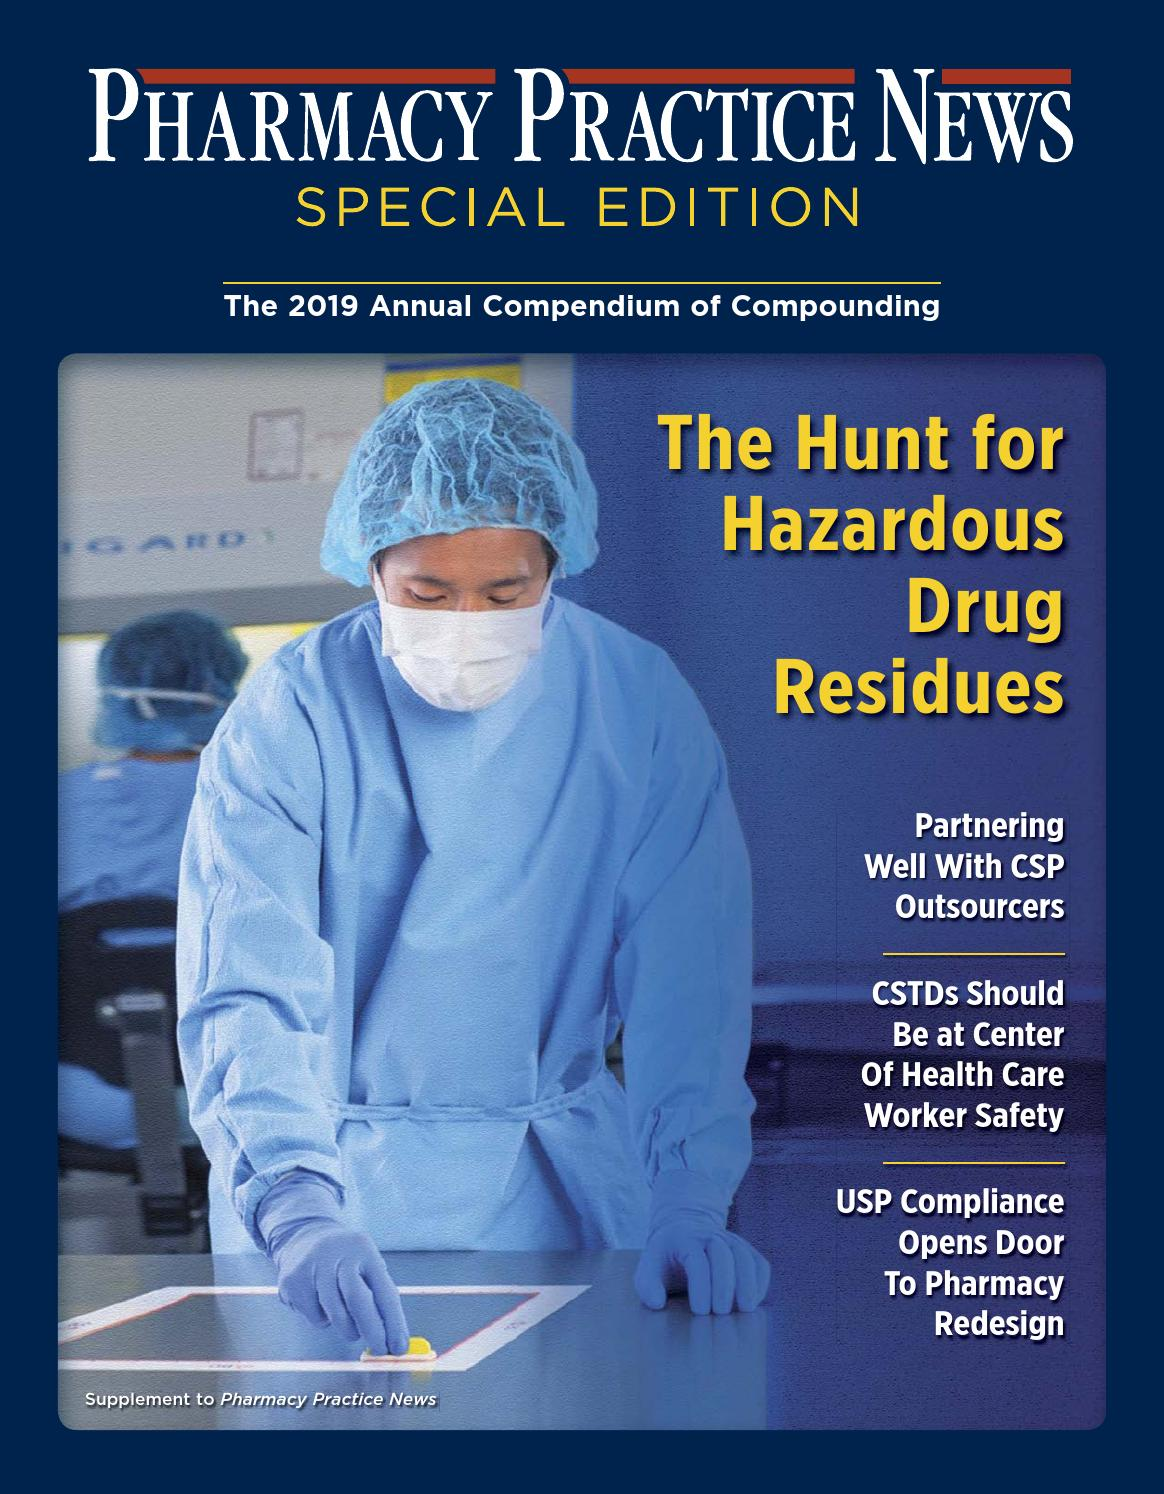 797 sterile personnel compounding a guide pharmacy answers chapter to for general 1. USP